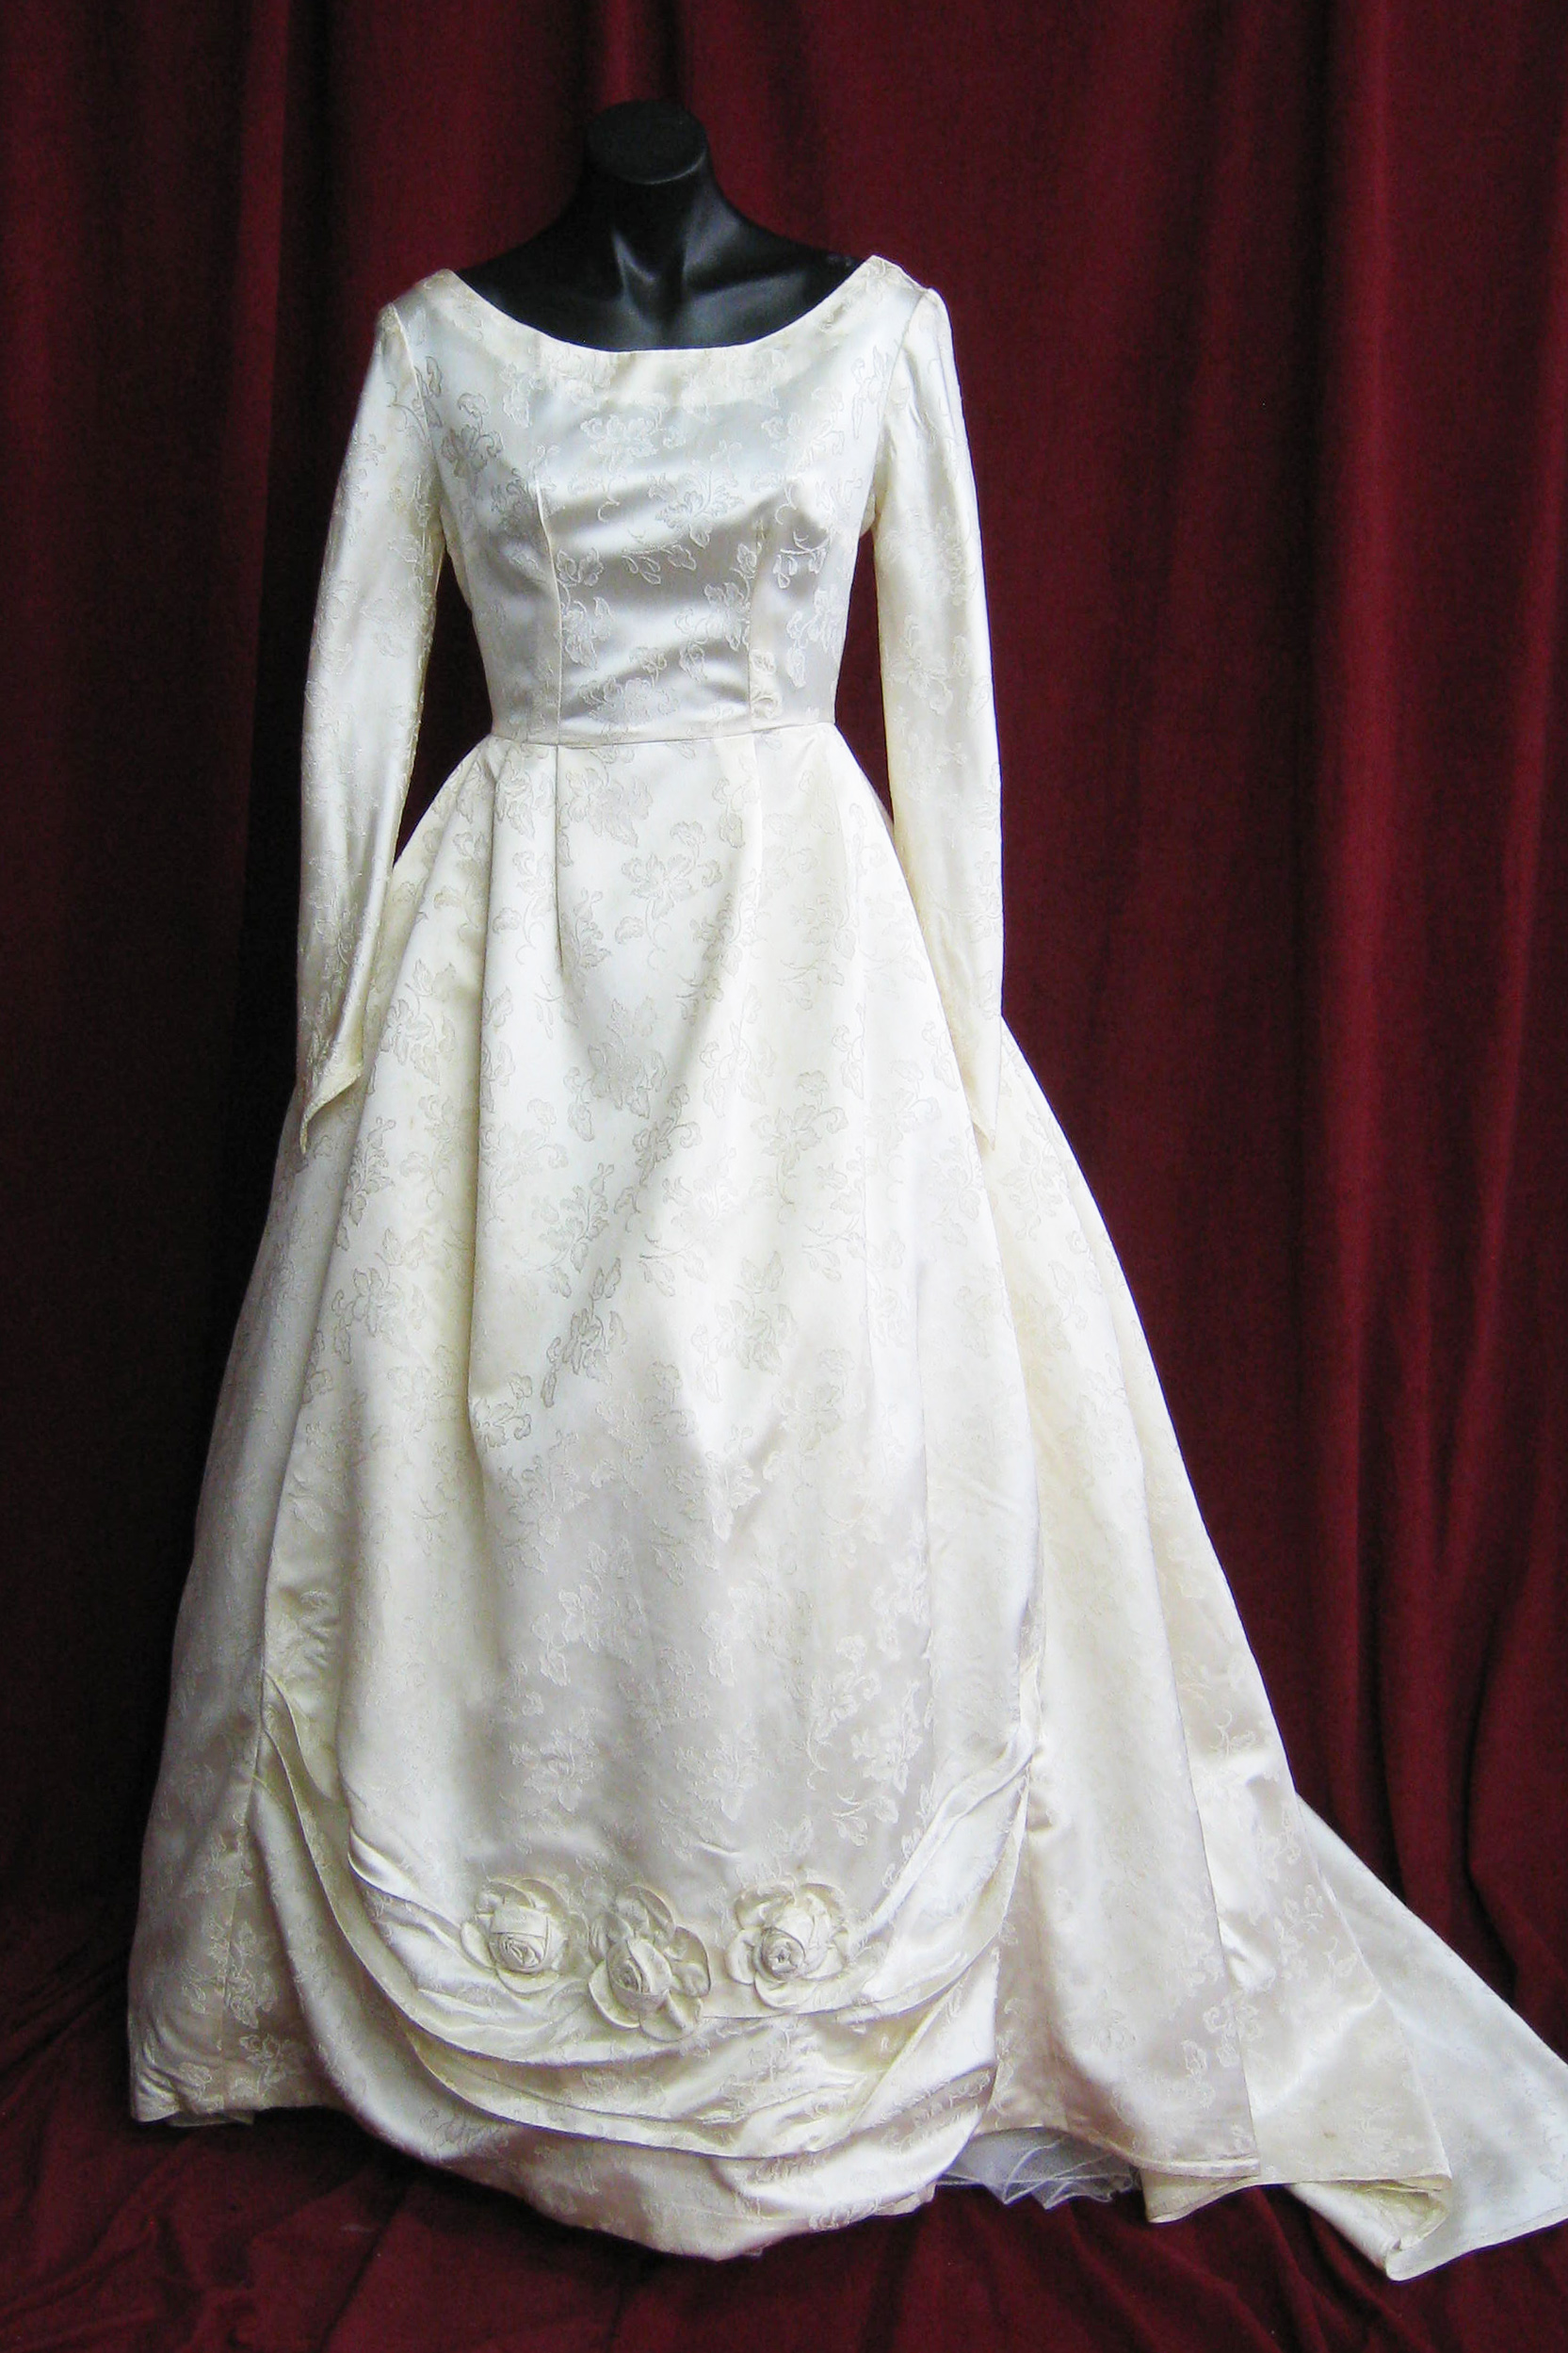 Wedding Dress 1950s Cream Brocade Full Skirt 50s sz. 10